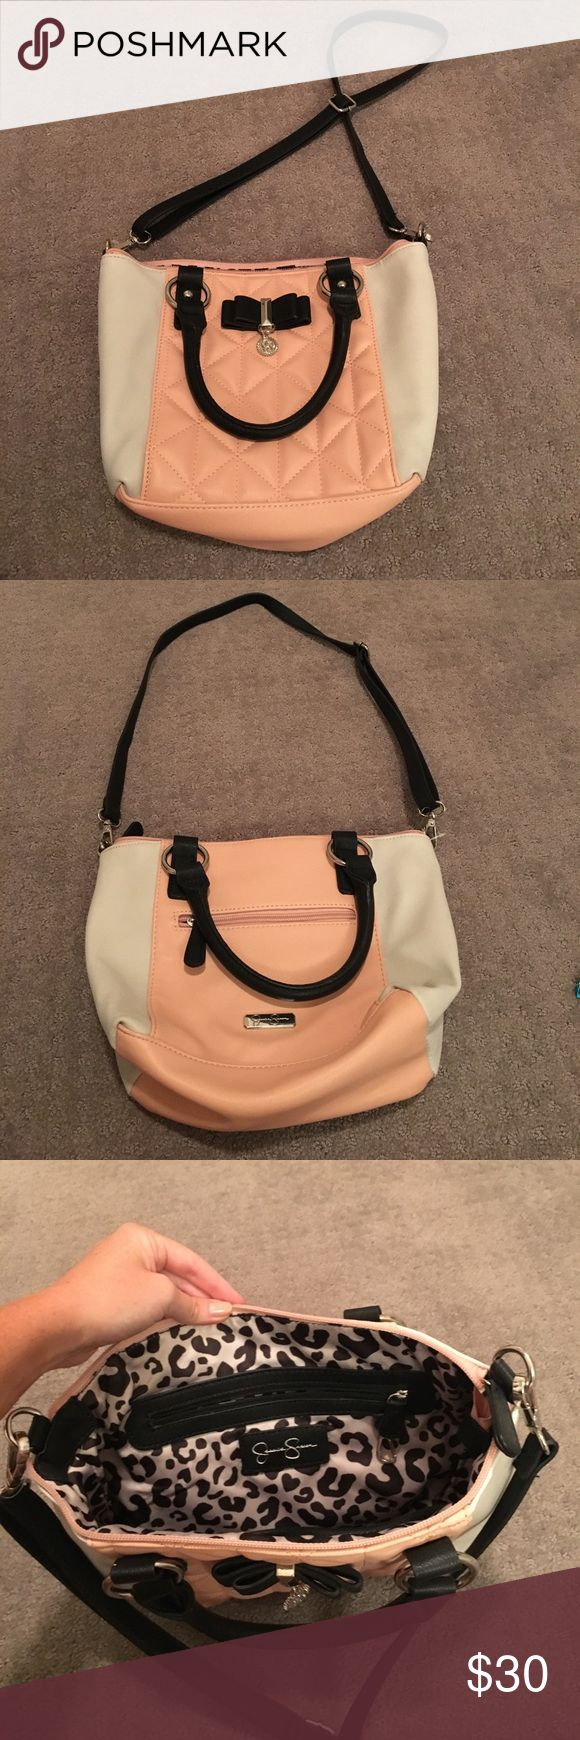 Jessica Simpson Cross body bag Never worn! It's a medium size cross body bag. Jessica Simpson Bags Crossbody Bags